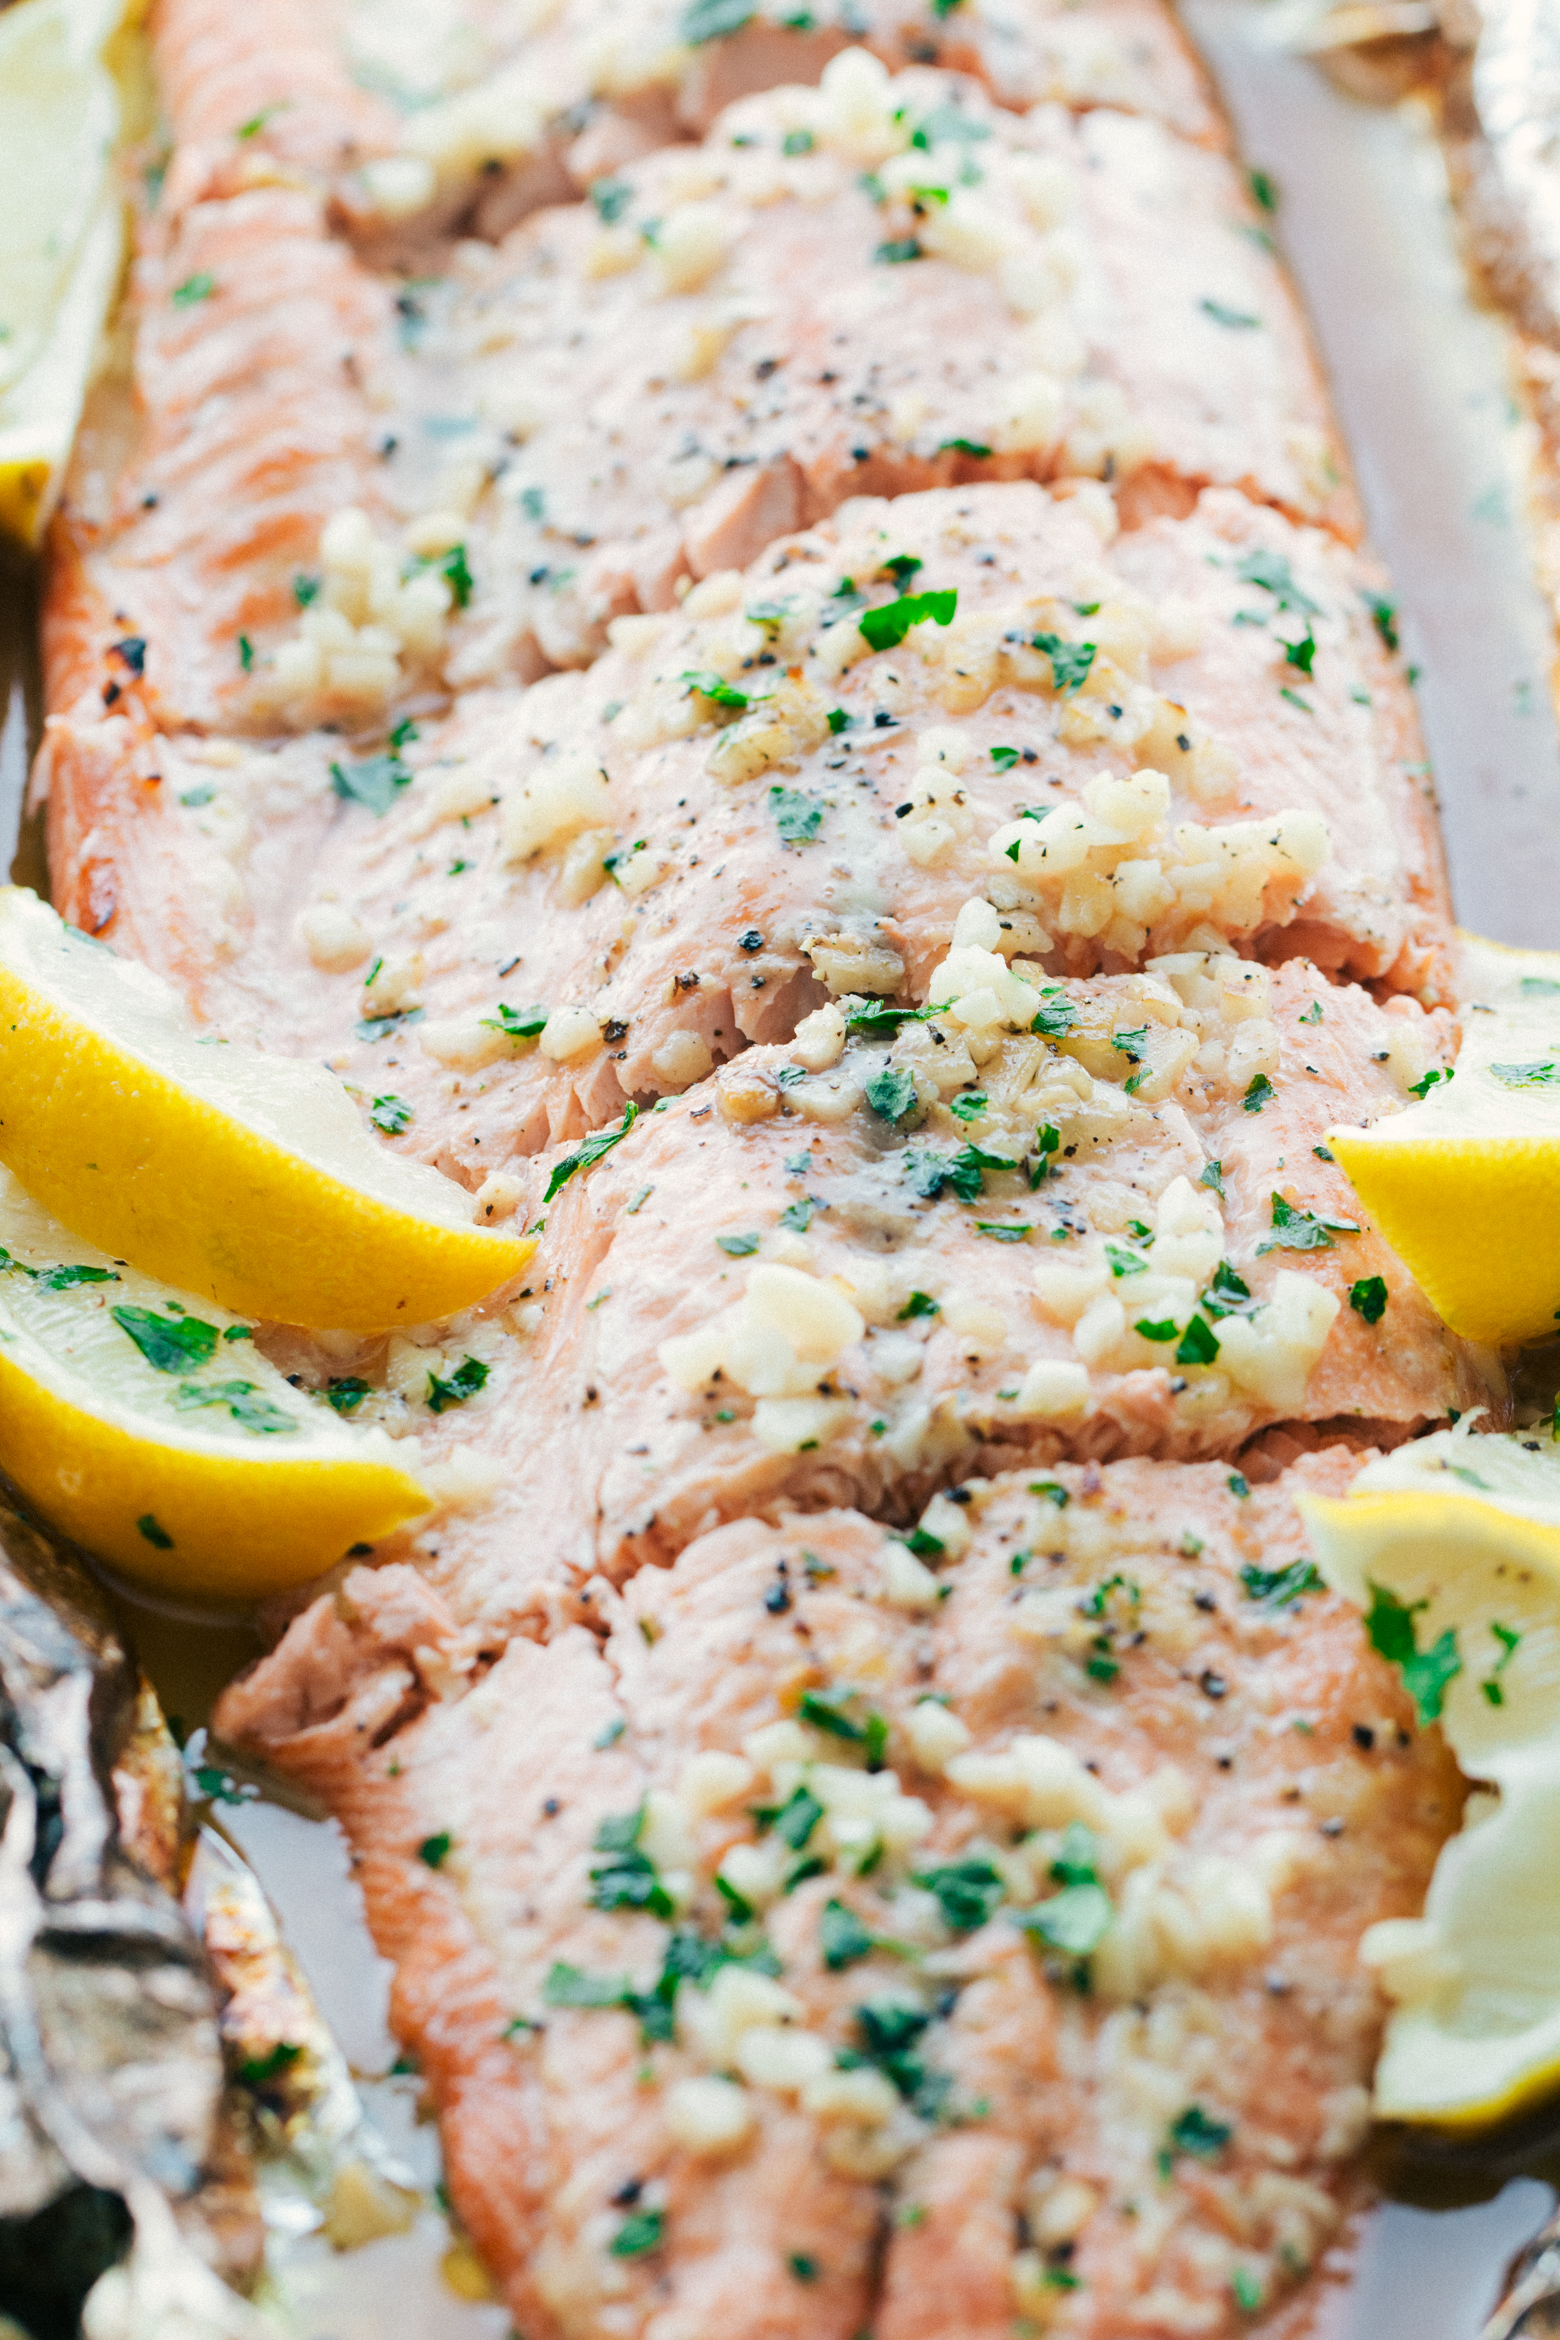 Garlic butter salmon baked on a piece of foil topped with lemon slices and chopped parsley by The Food Cafe.